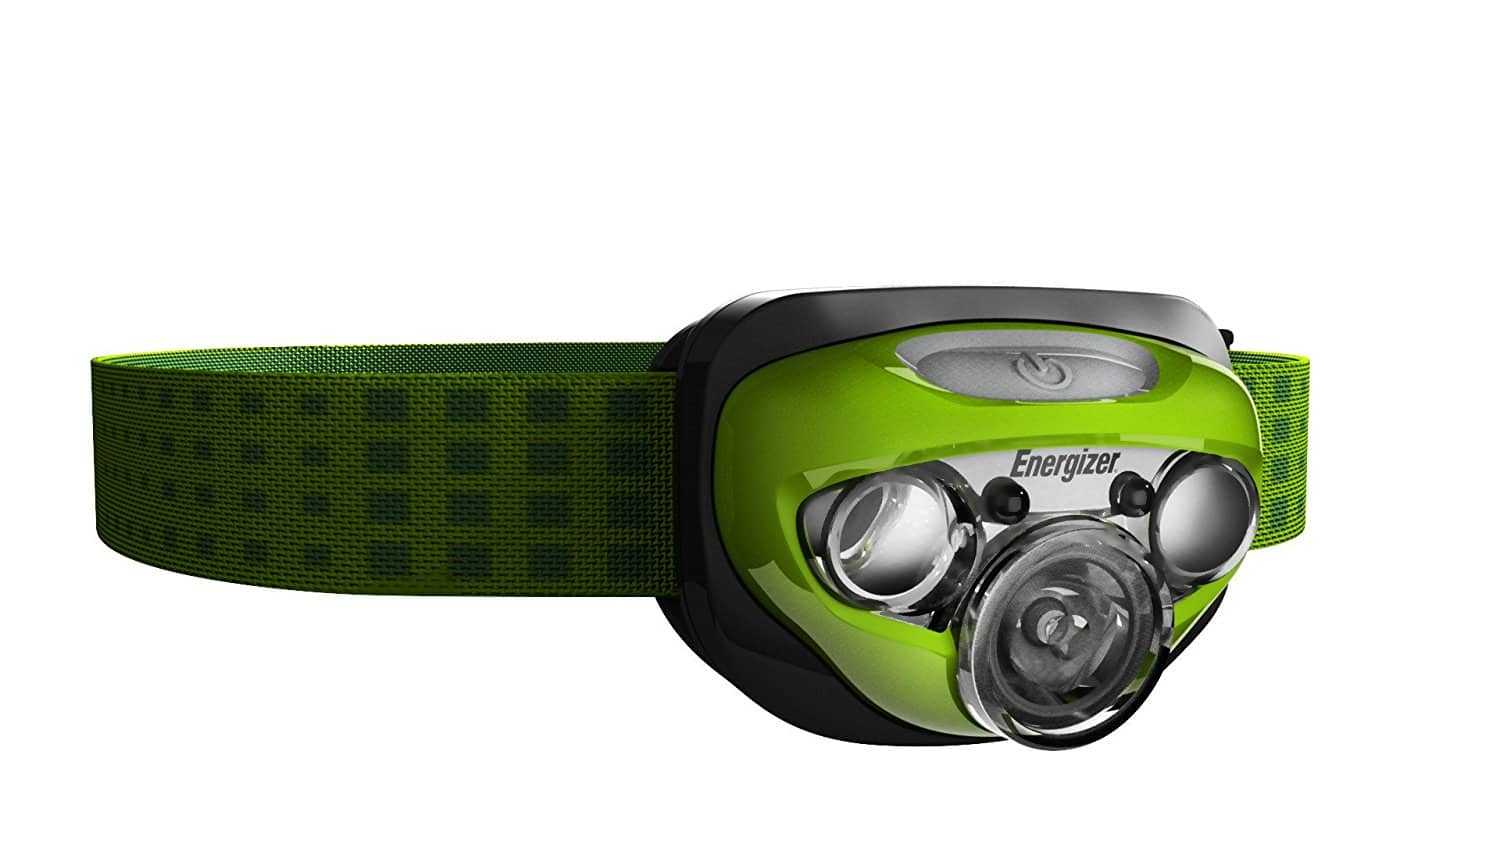 Energizer LED Headlamp with HD+ Vision Optics, 4 modes (Batteries Included) $8.4